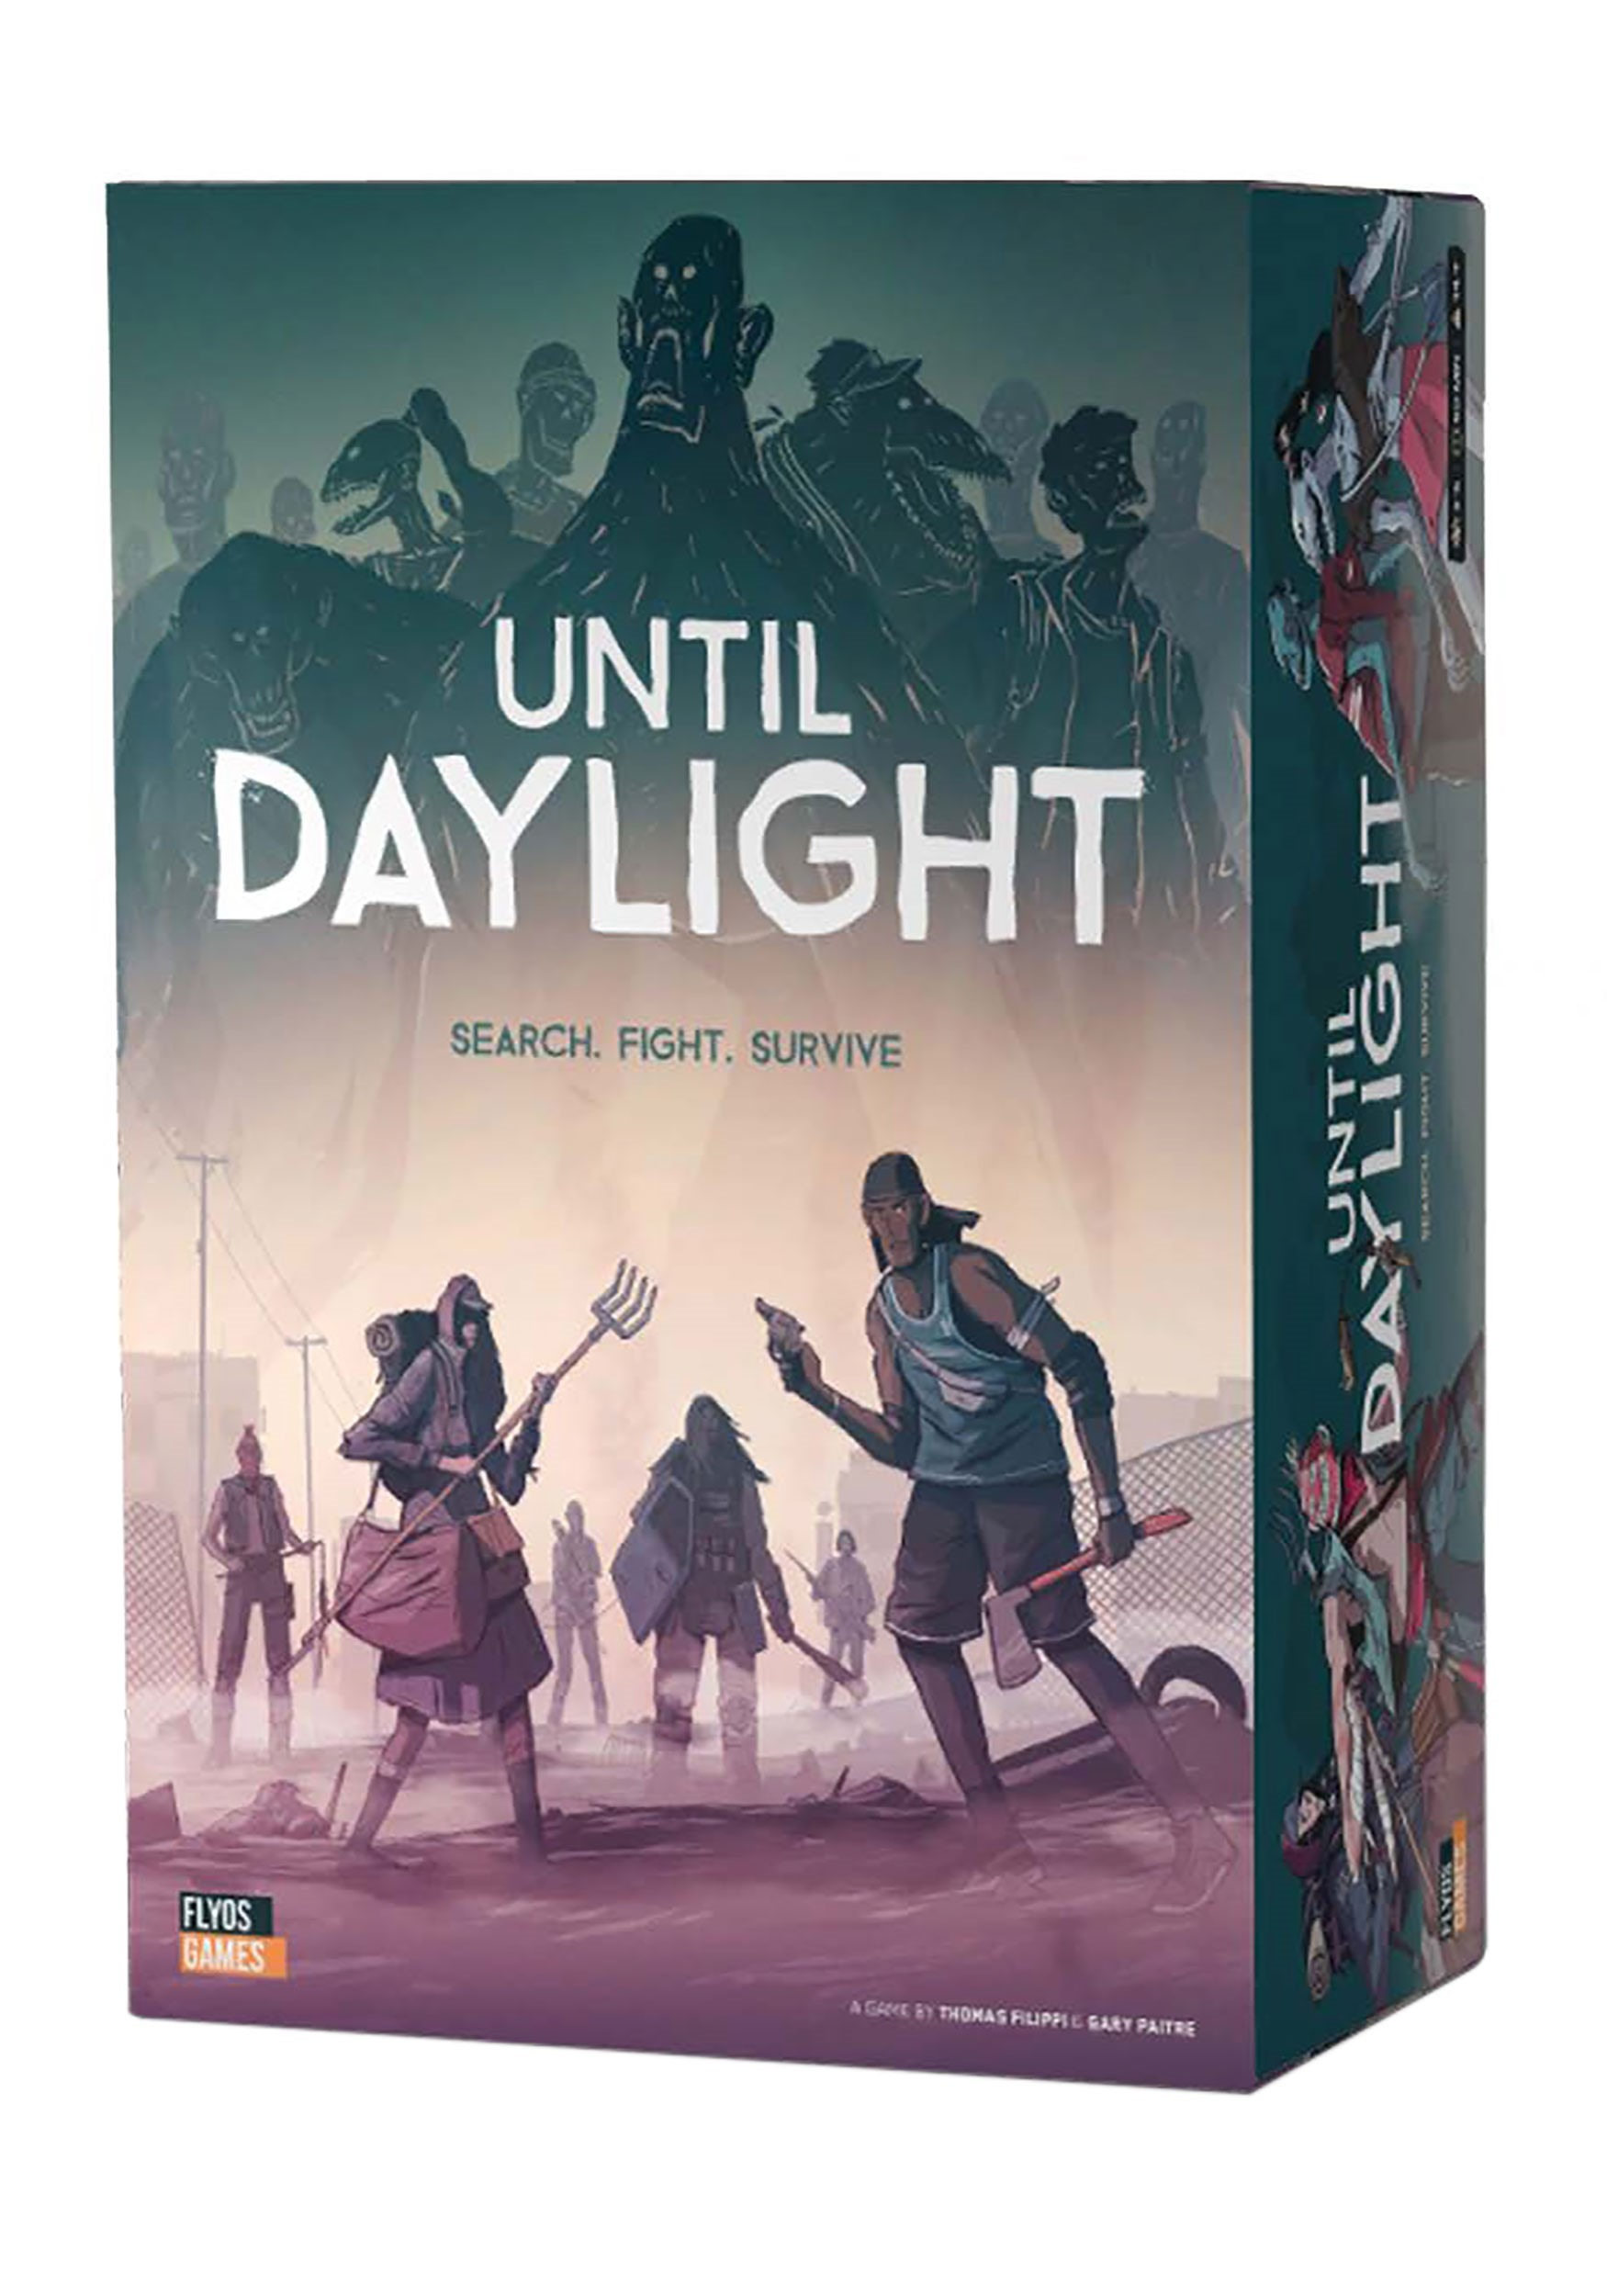 The Until Daylight Survival Card Game